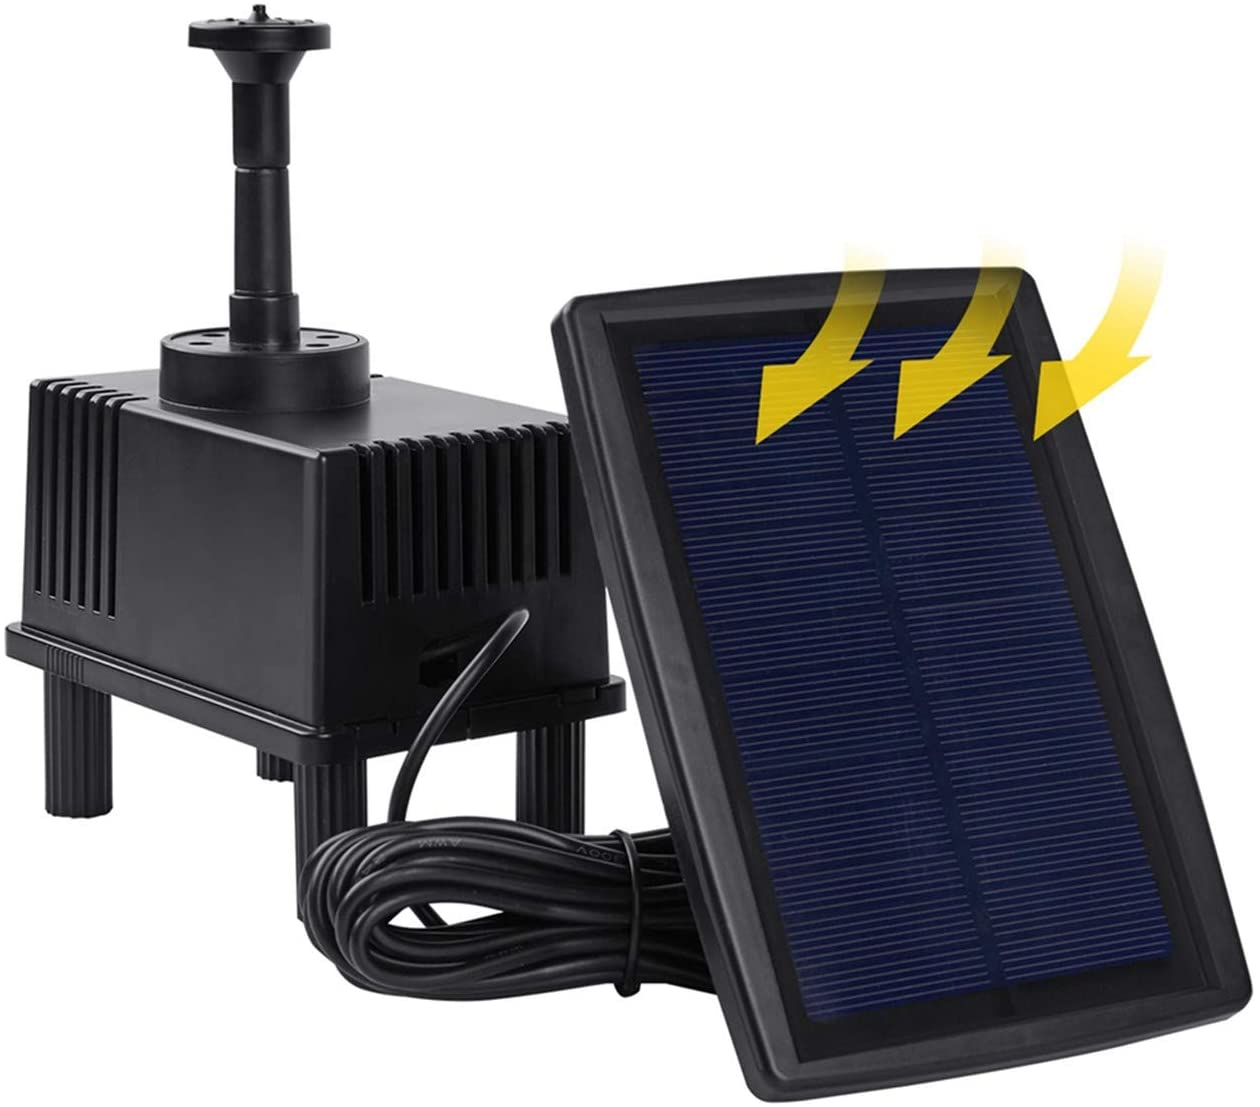 OCGIG Solar Power Fountain 180L/H Pump Pool Fish Garden Pond Watering Submersible Tool